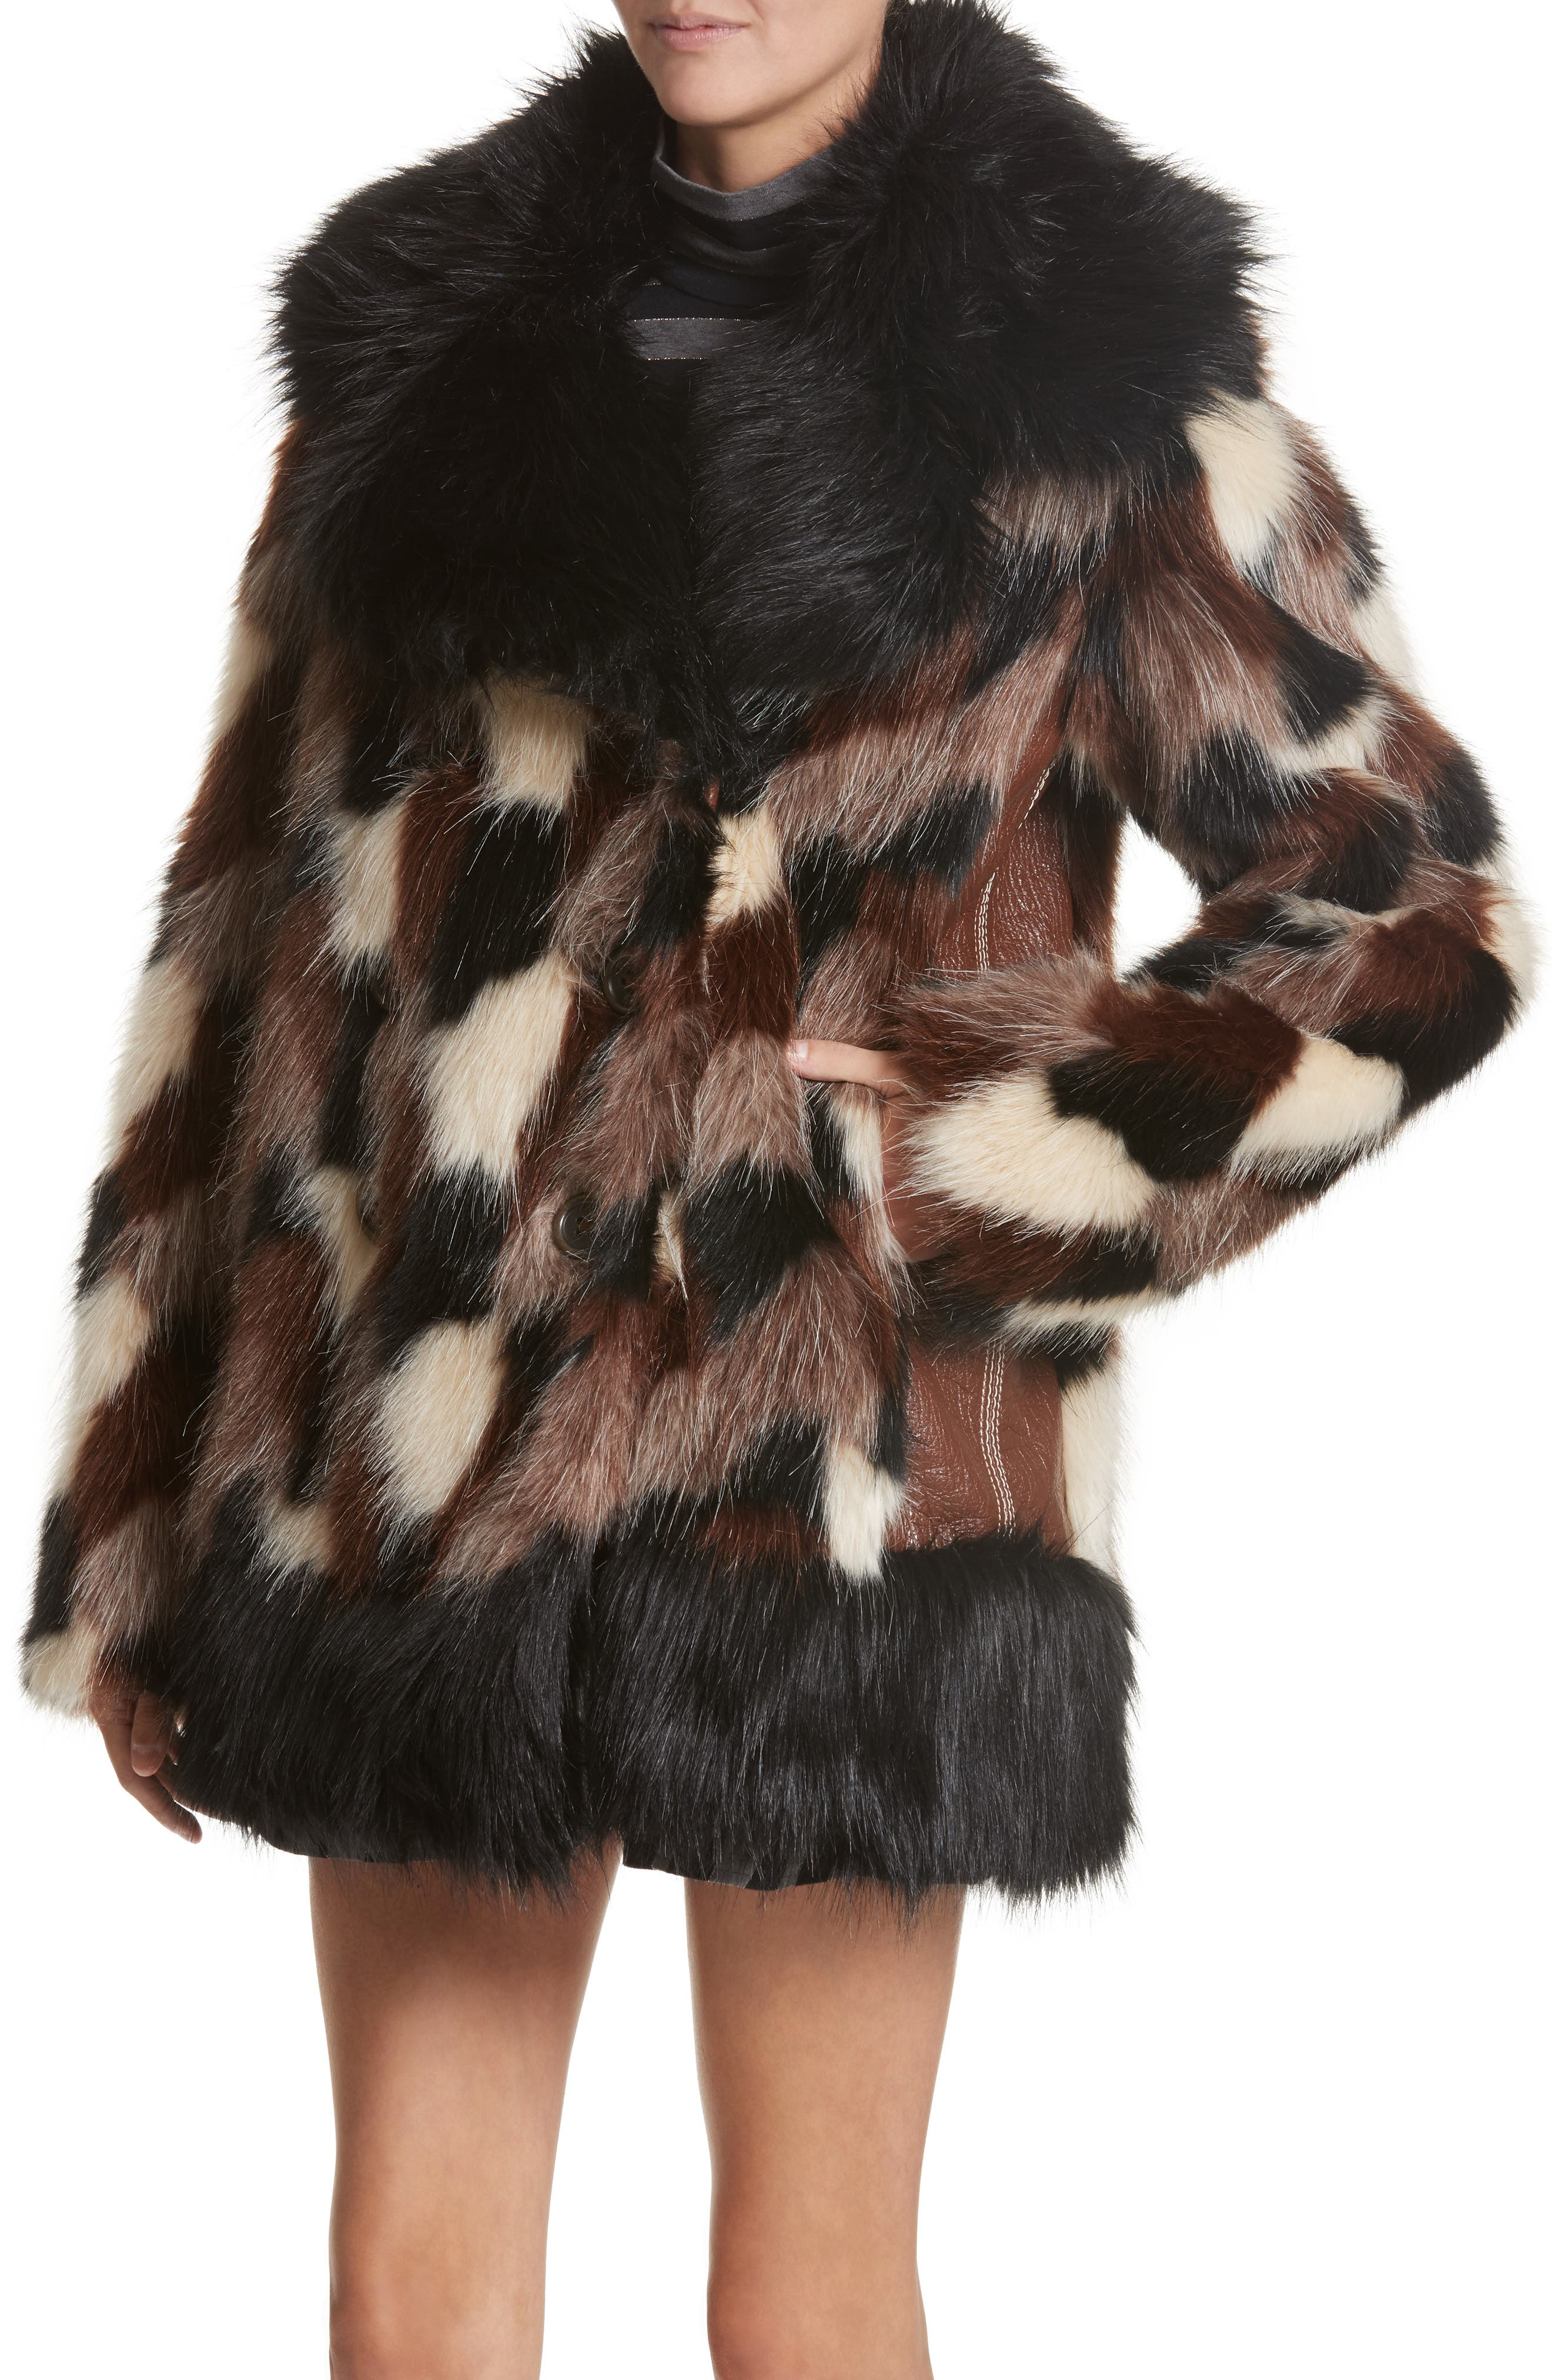 Patchwork Faux Fur Jacket,                             Alternate thumbnail 7, color,                             Black Multi